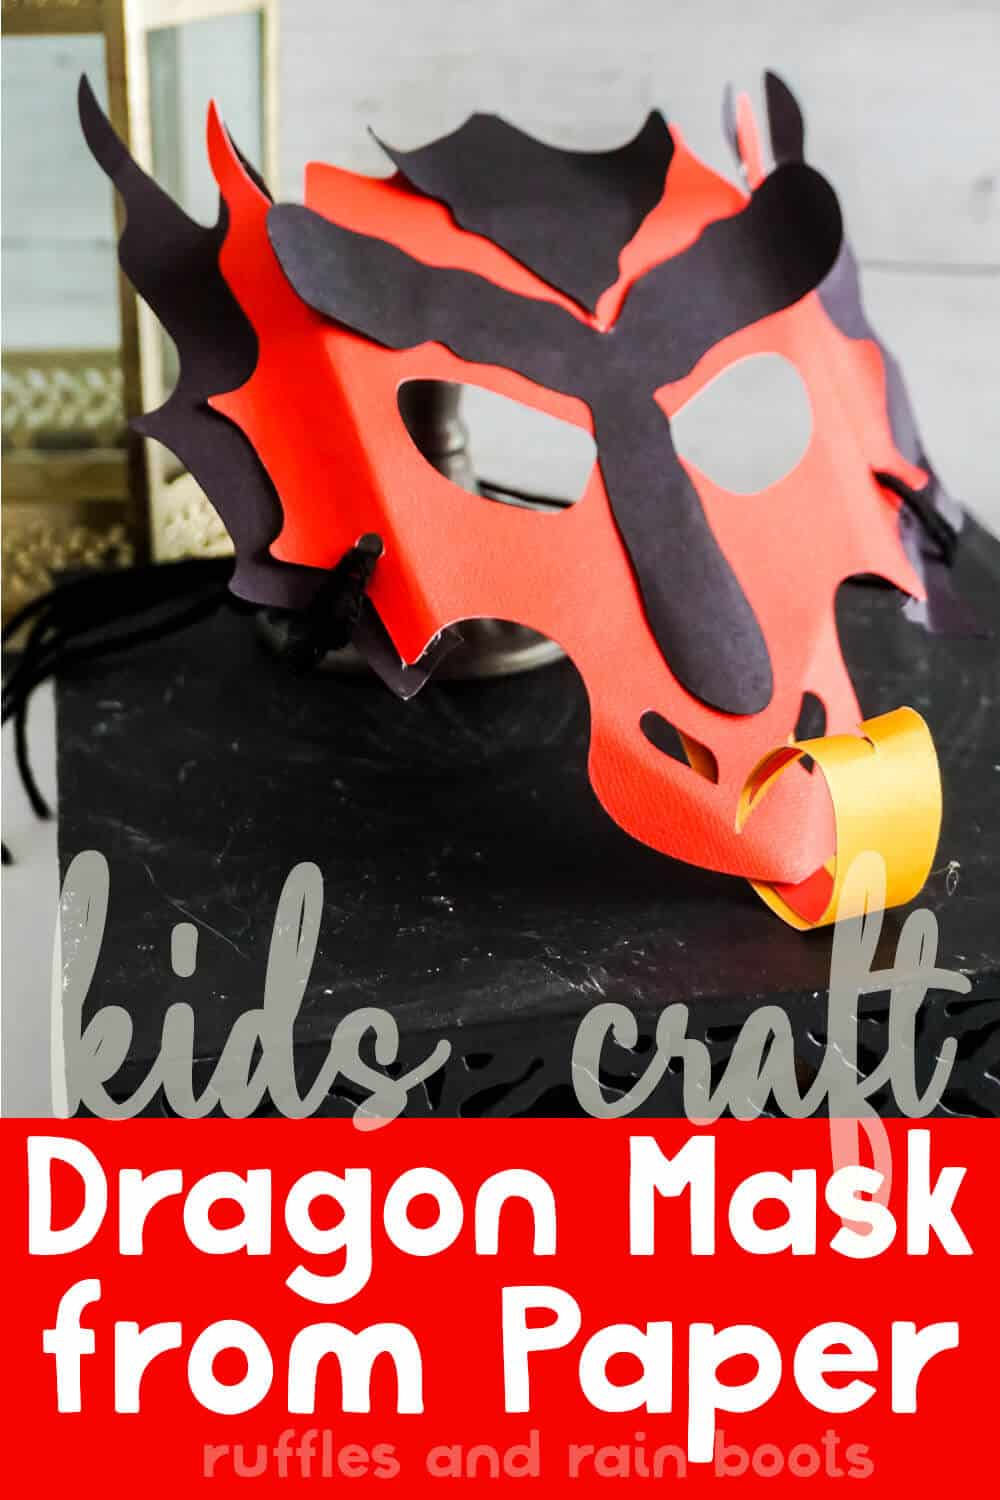 fun kids craft dragon paper mask with text which reads kids craft dragon mask from paper